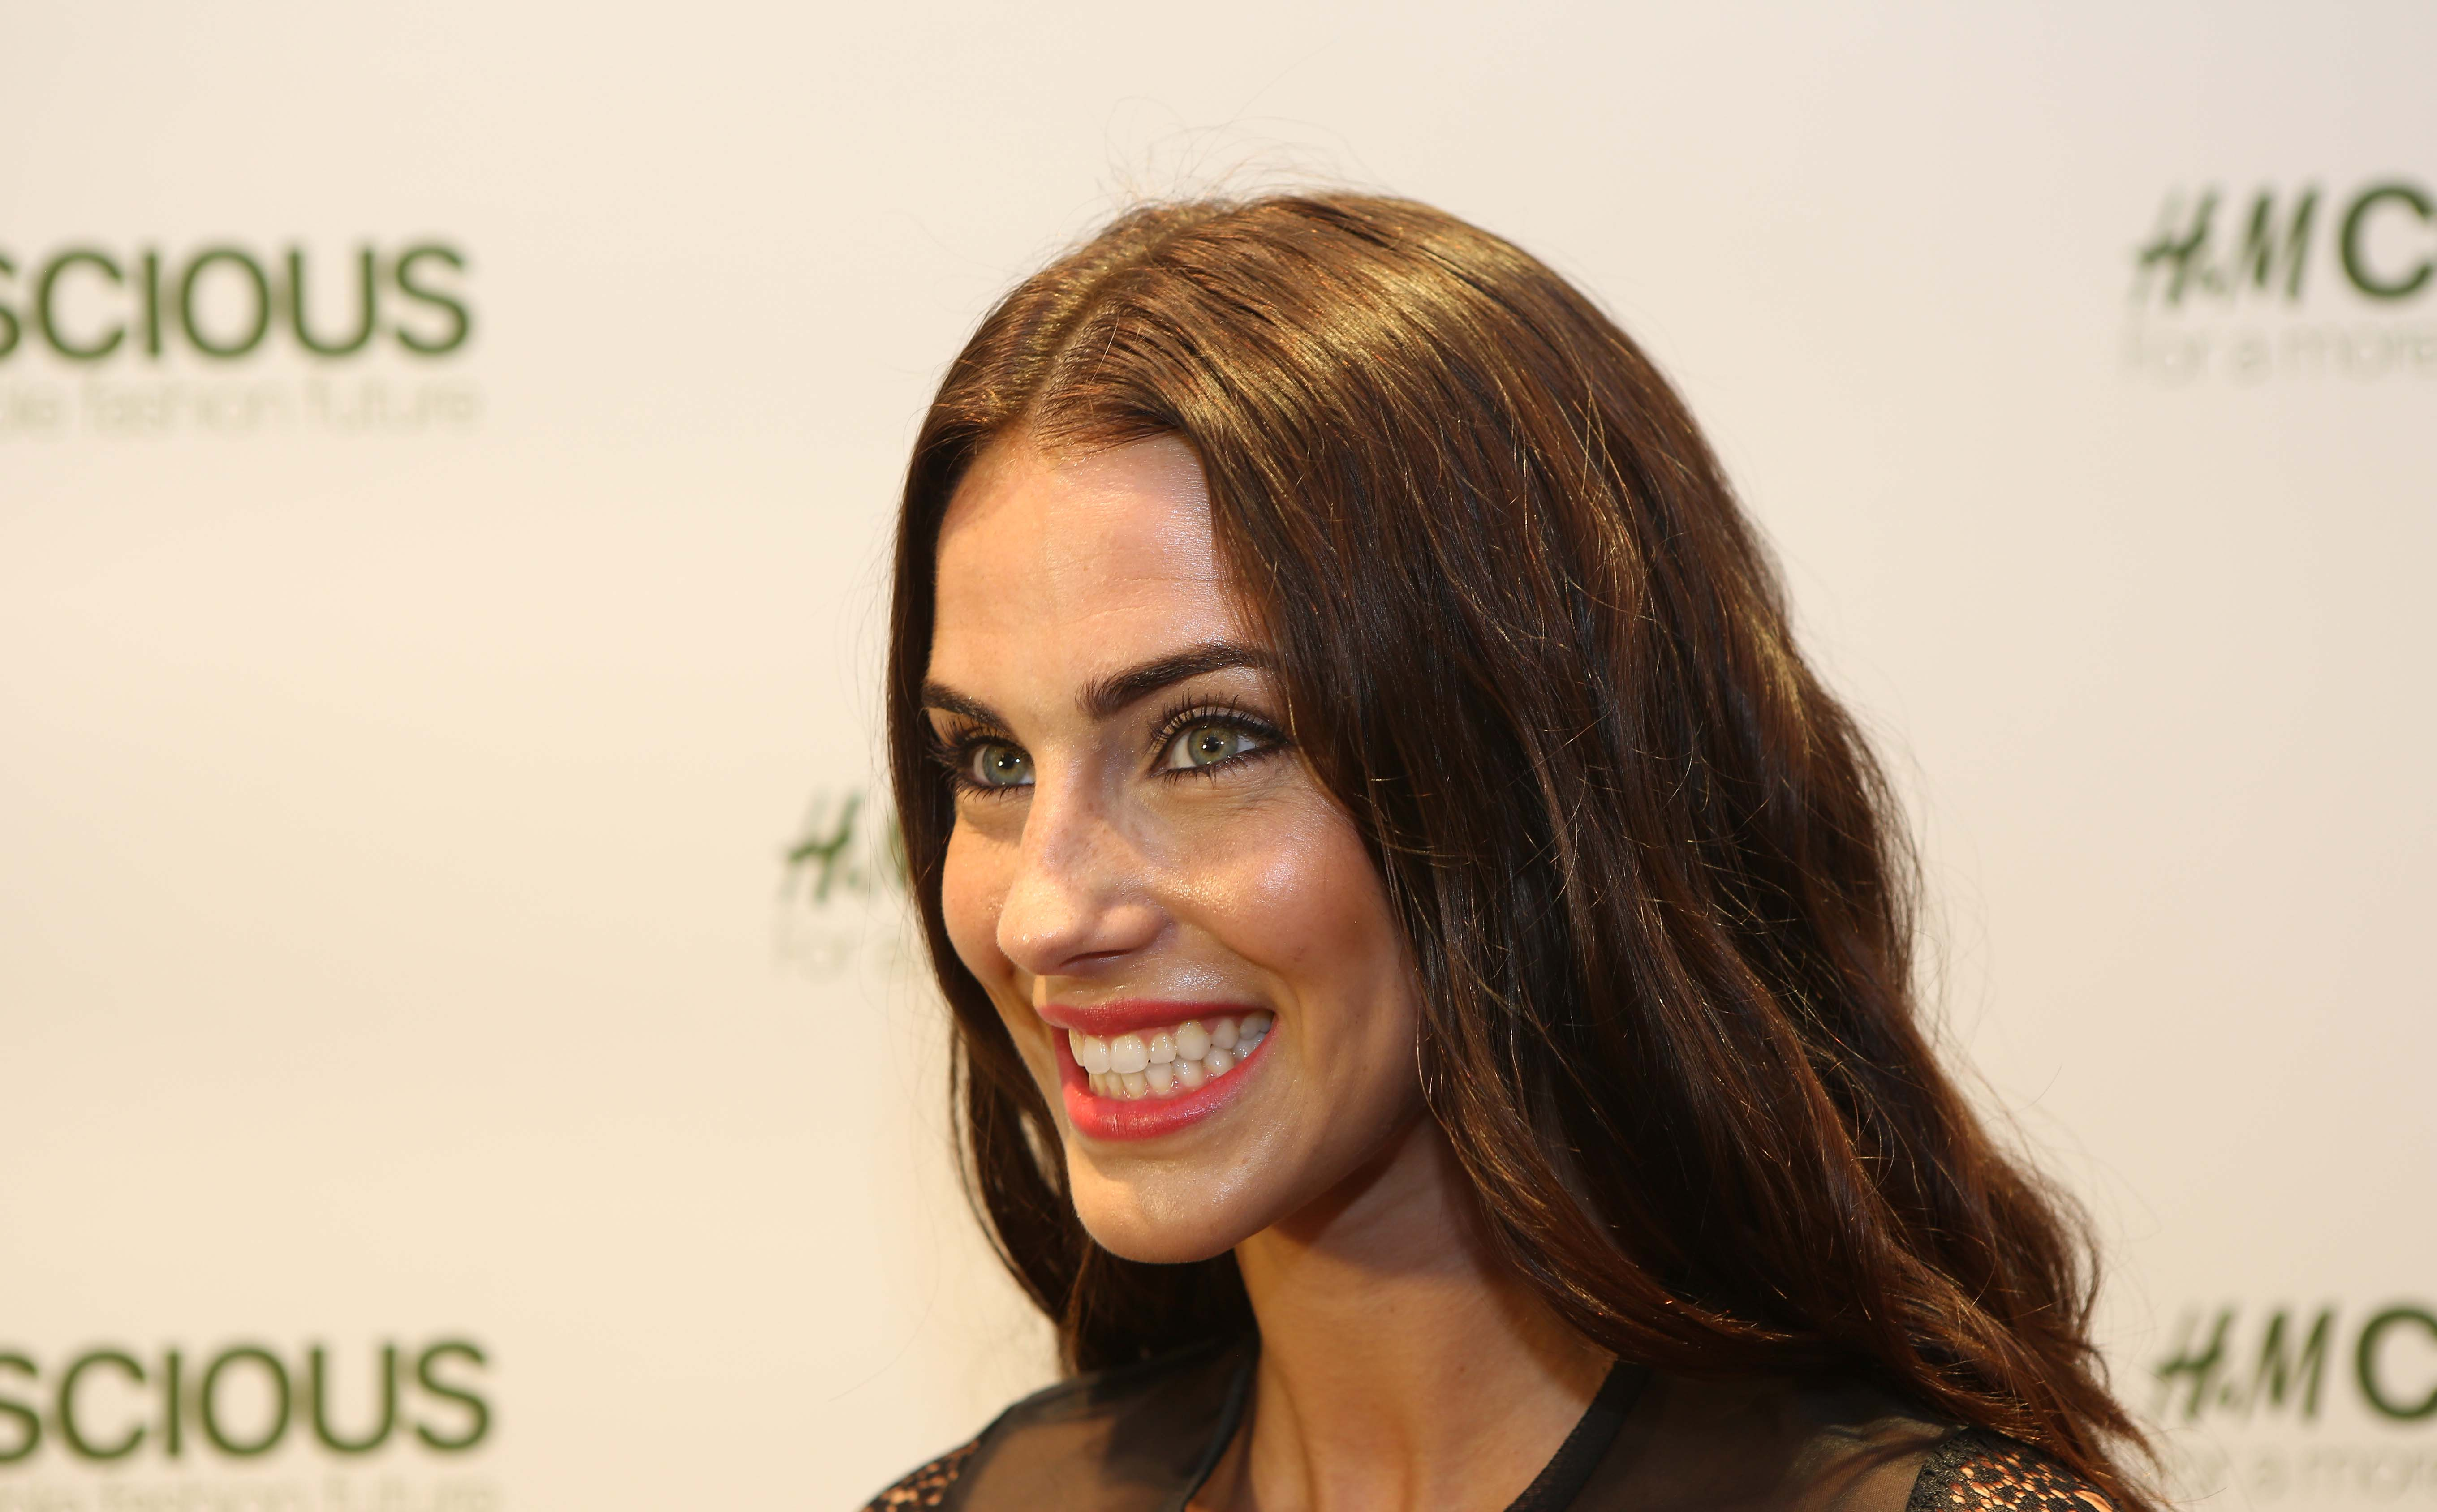 5440x3376 - Jessica Lowndes Wallpapers 9